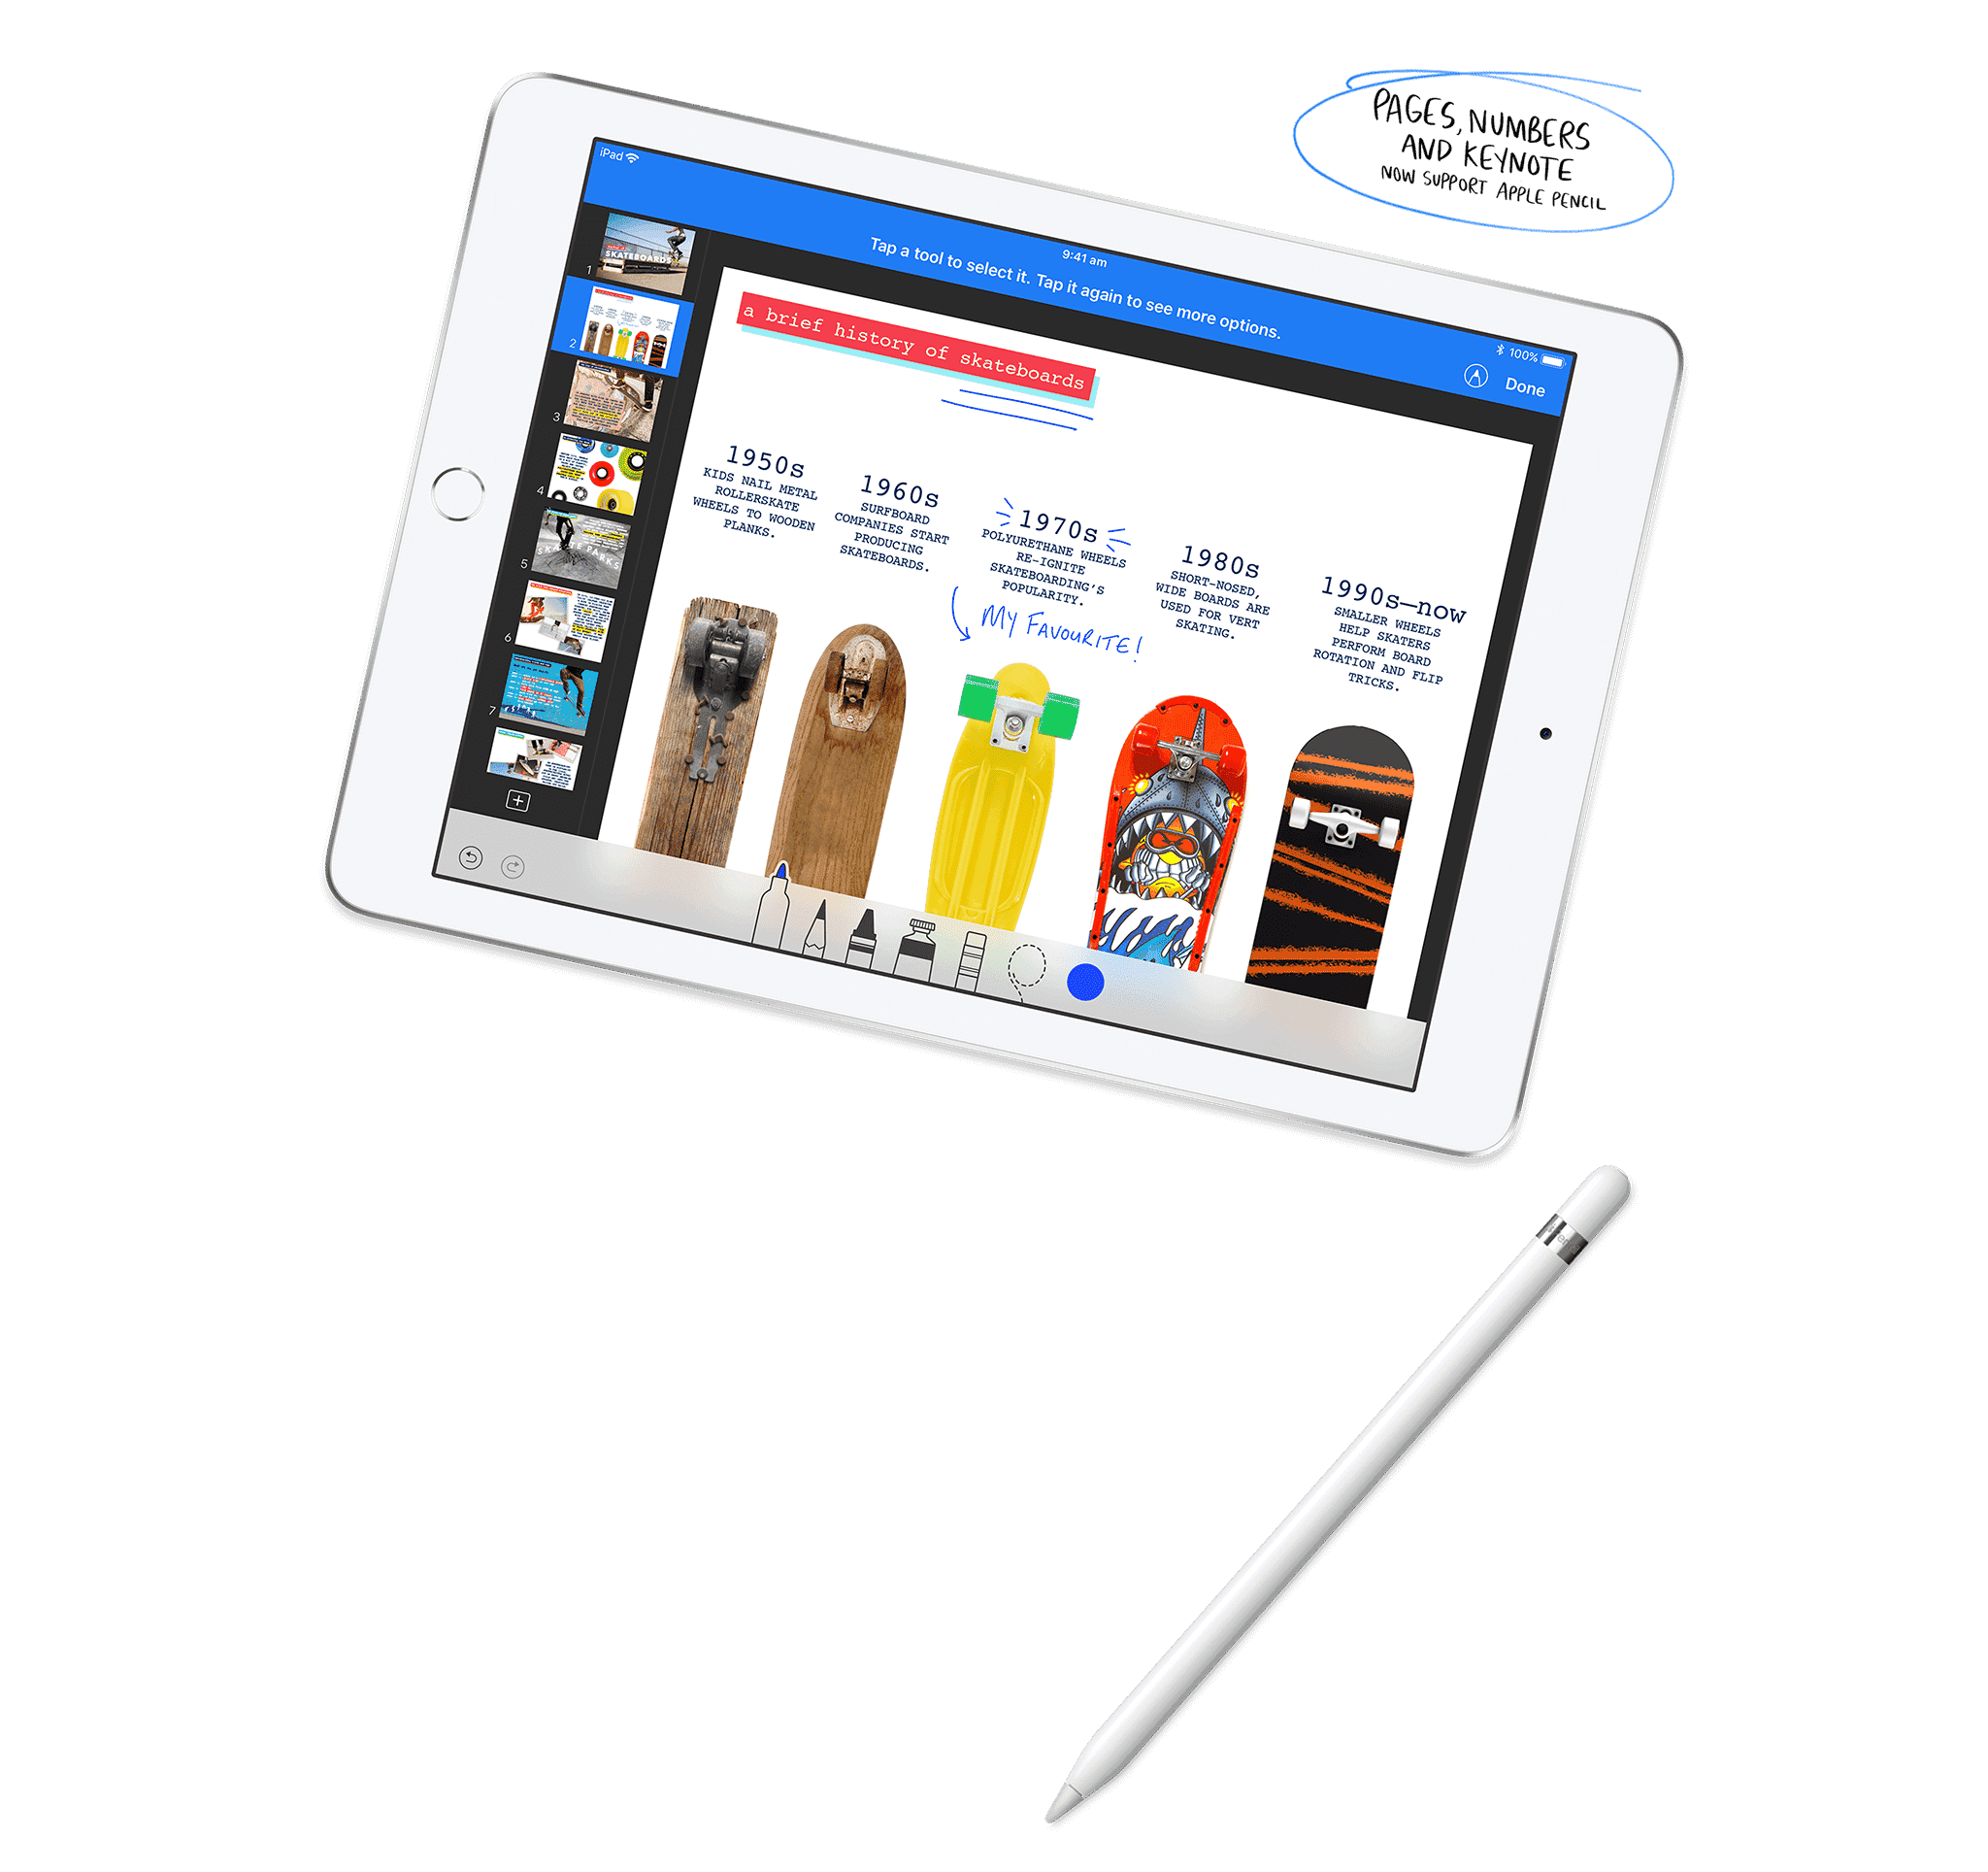 Apple iPads are loaded with multiple amazing apps so you can play music, edit movies, create an awesome presentation and more. Shop now at The Good Guys.